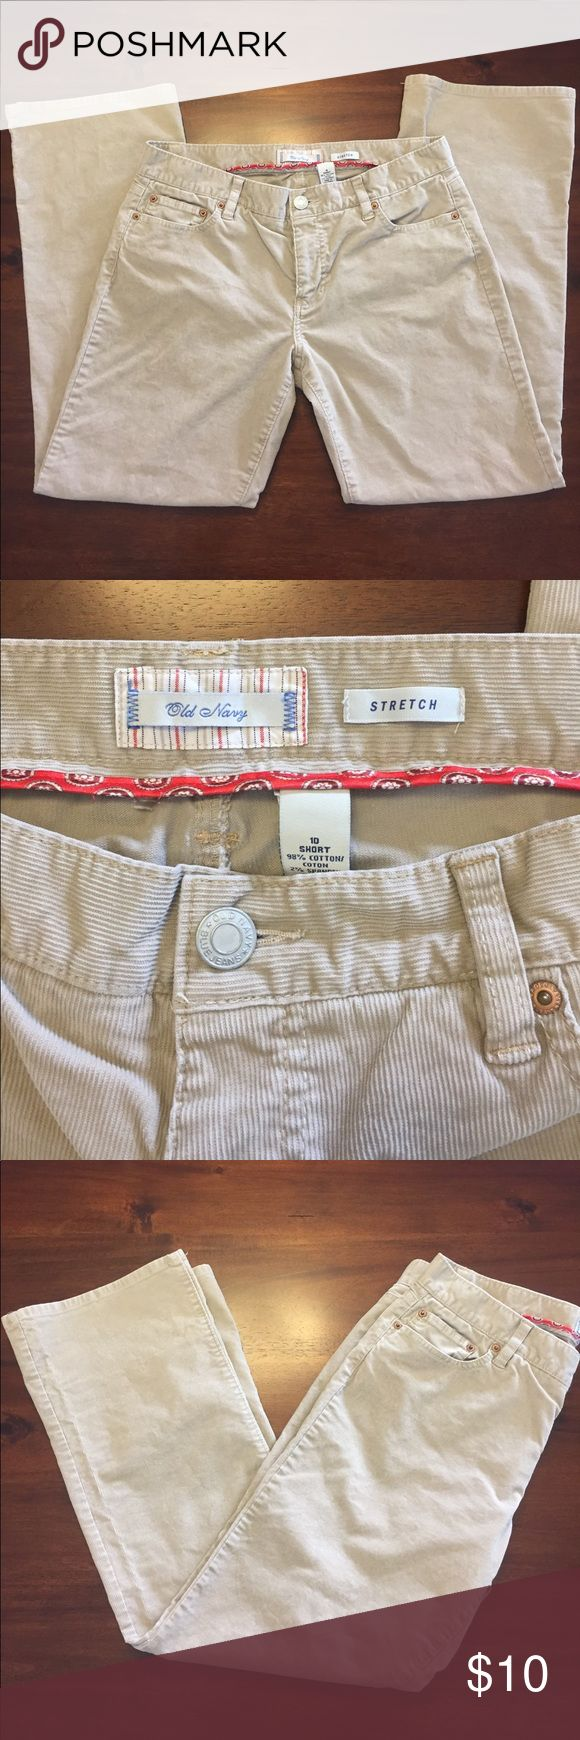 Old Navy 10 short corduroy pants Old Navy size 10S / 10 short stretch corduroy pants in tan color. Pants feature lower rise and boot cut / flare leg. Very cute and flattering fit! Worn just a few times and in great condition. From smoke free home. Take a look at my other items for sale and bundle to save! Pants Boot Cut & Flare